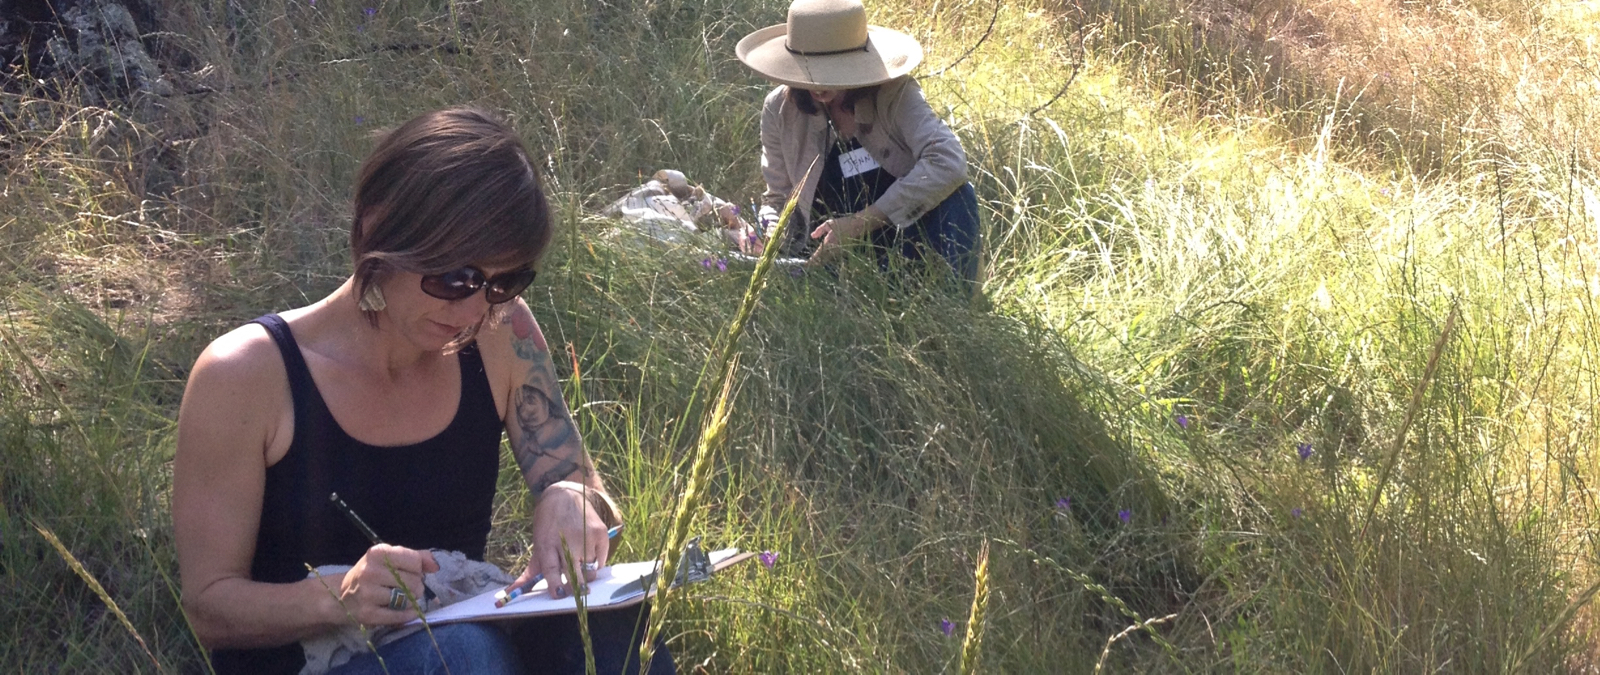 Nature Journaling at Pepperwood Preserve